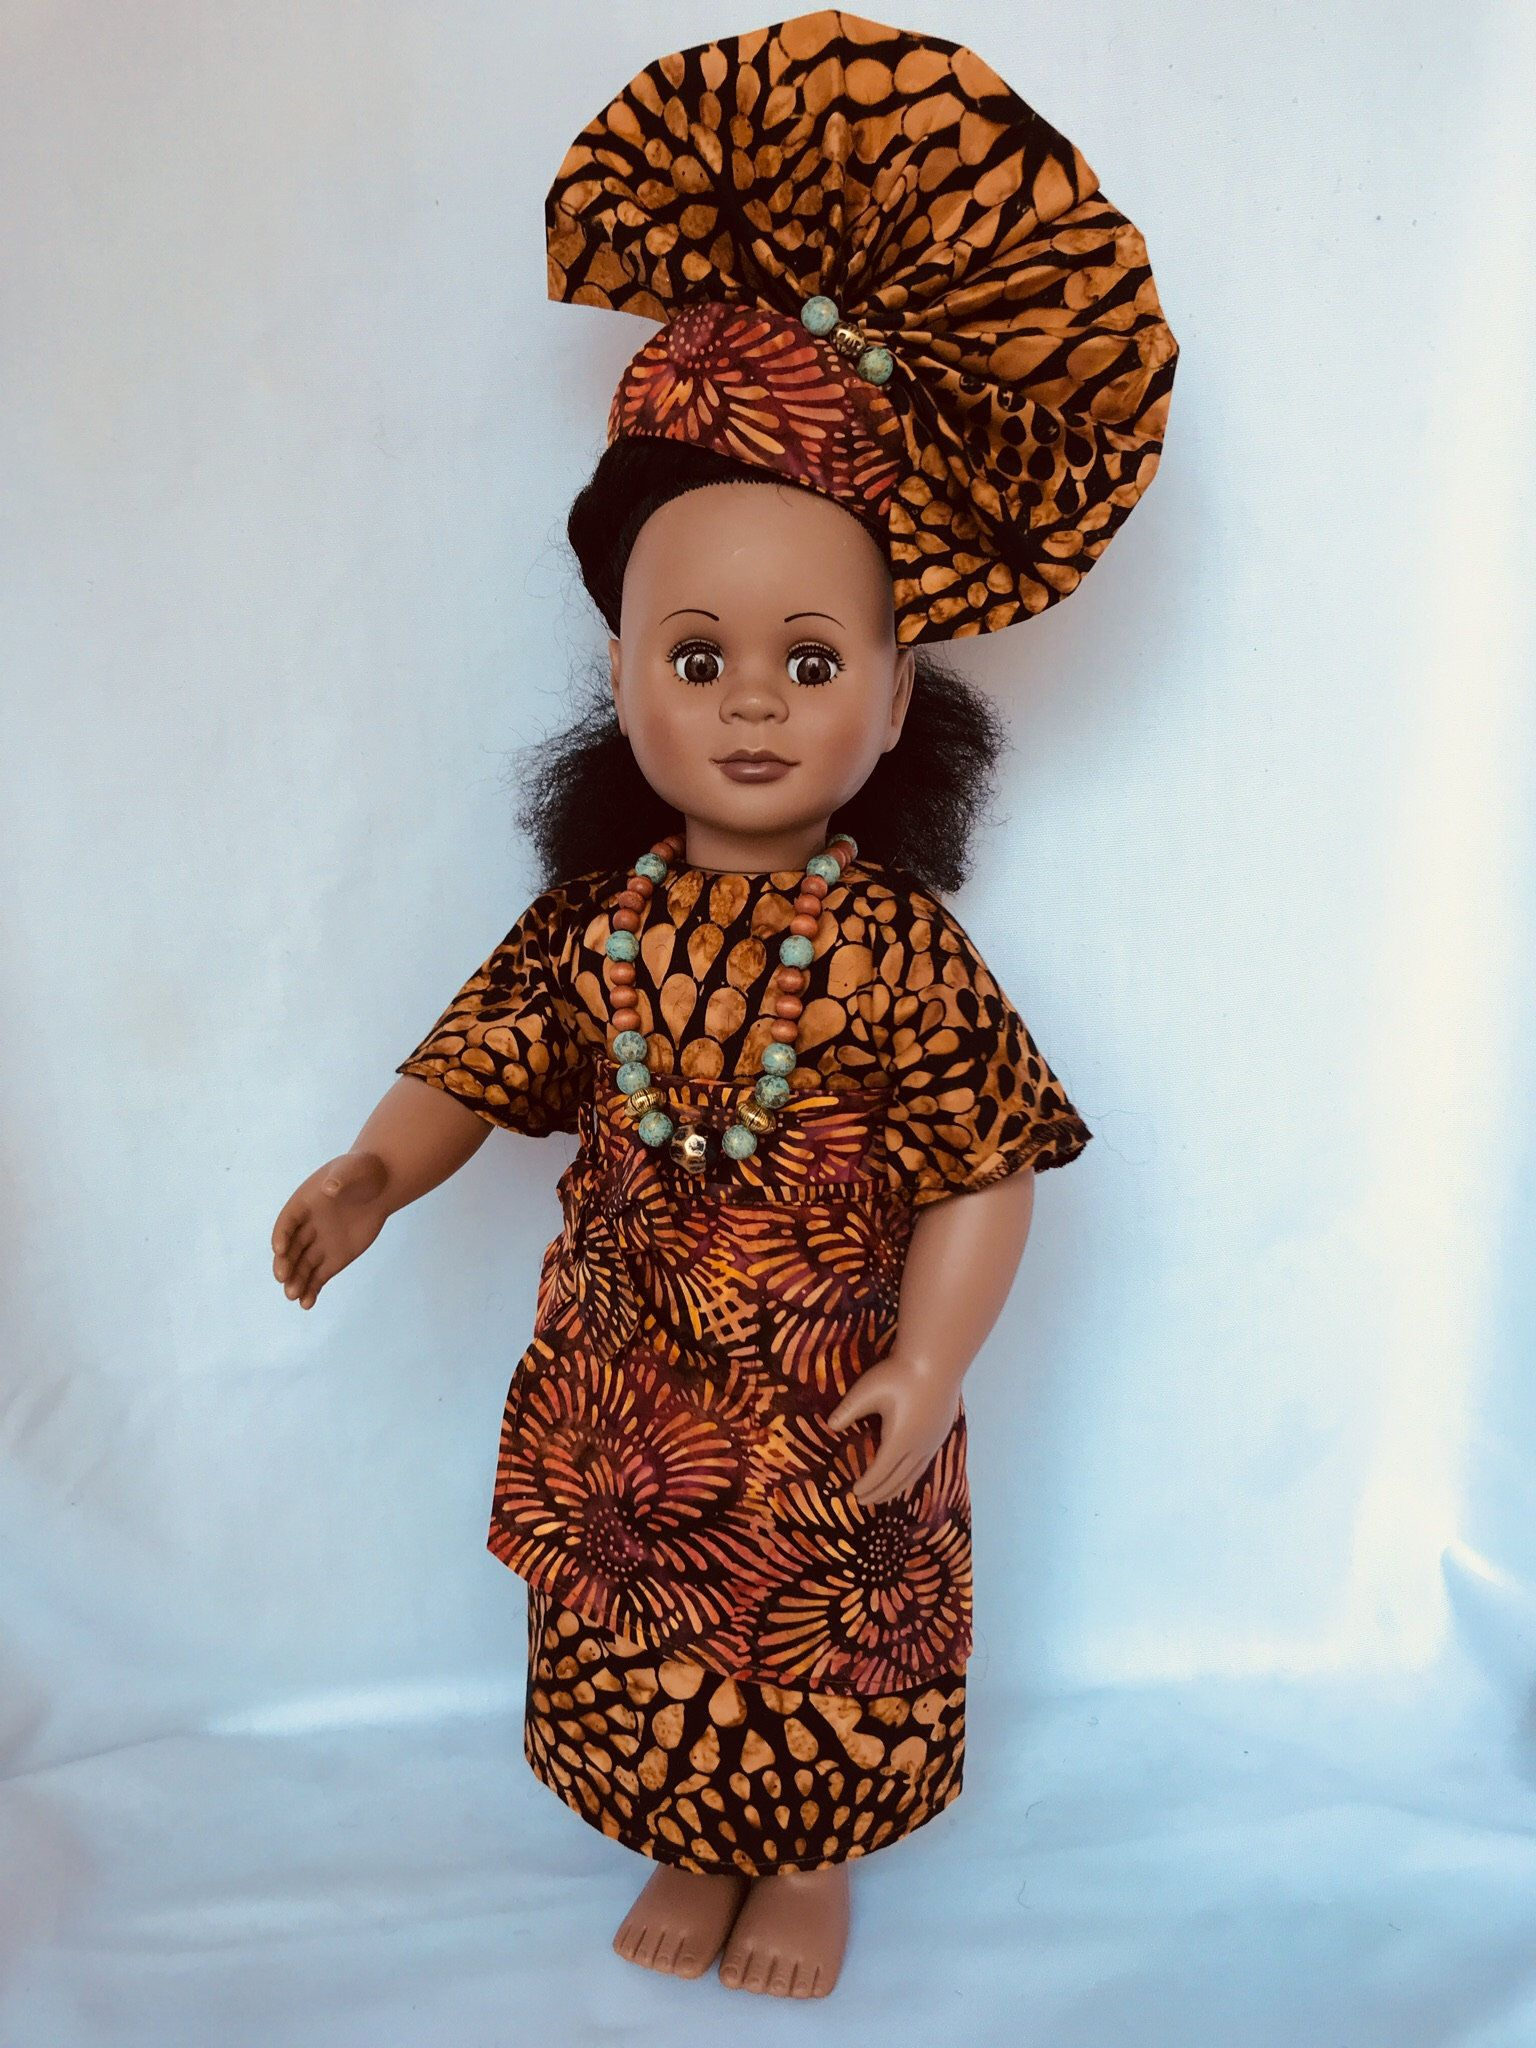 18 inch Doll Handmade clothes Fits American Girl Doll Vibrant African Print Maxi Skirt with front belt tied into a bow